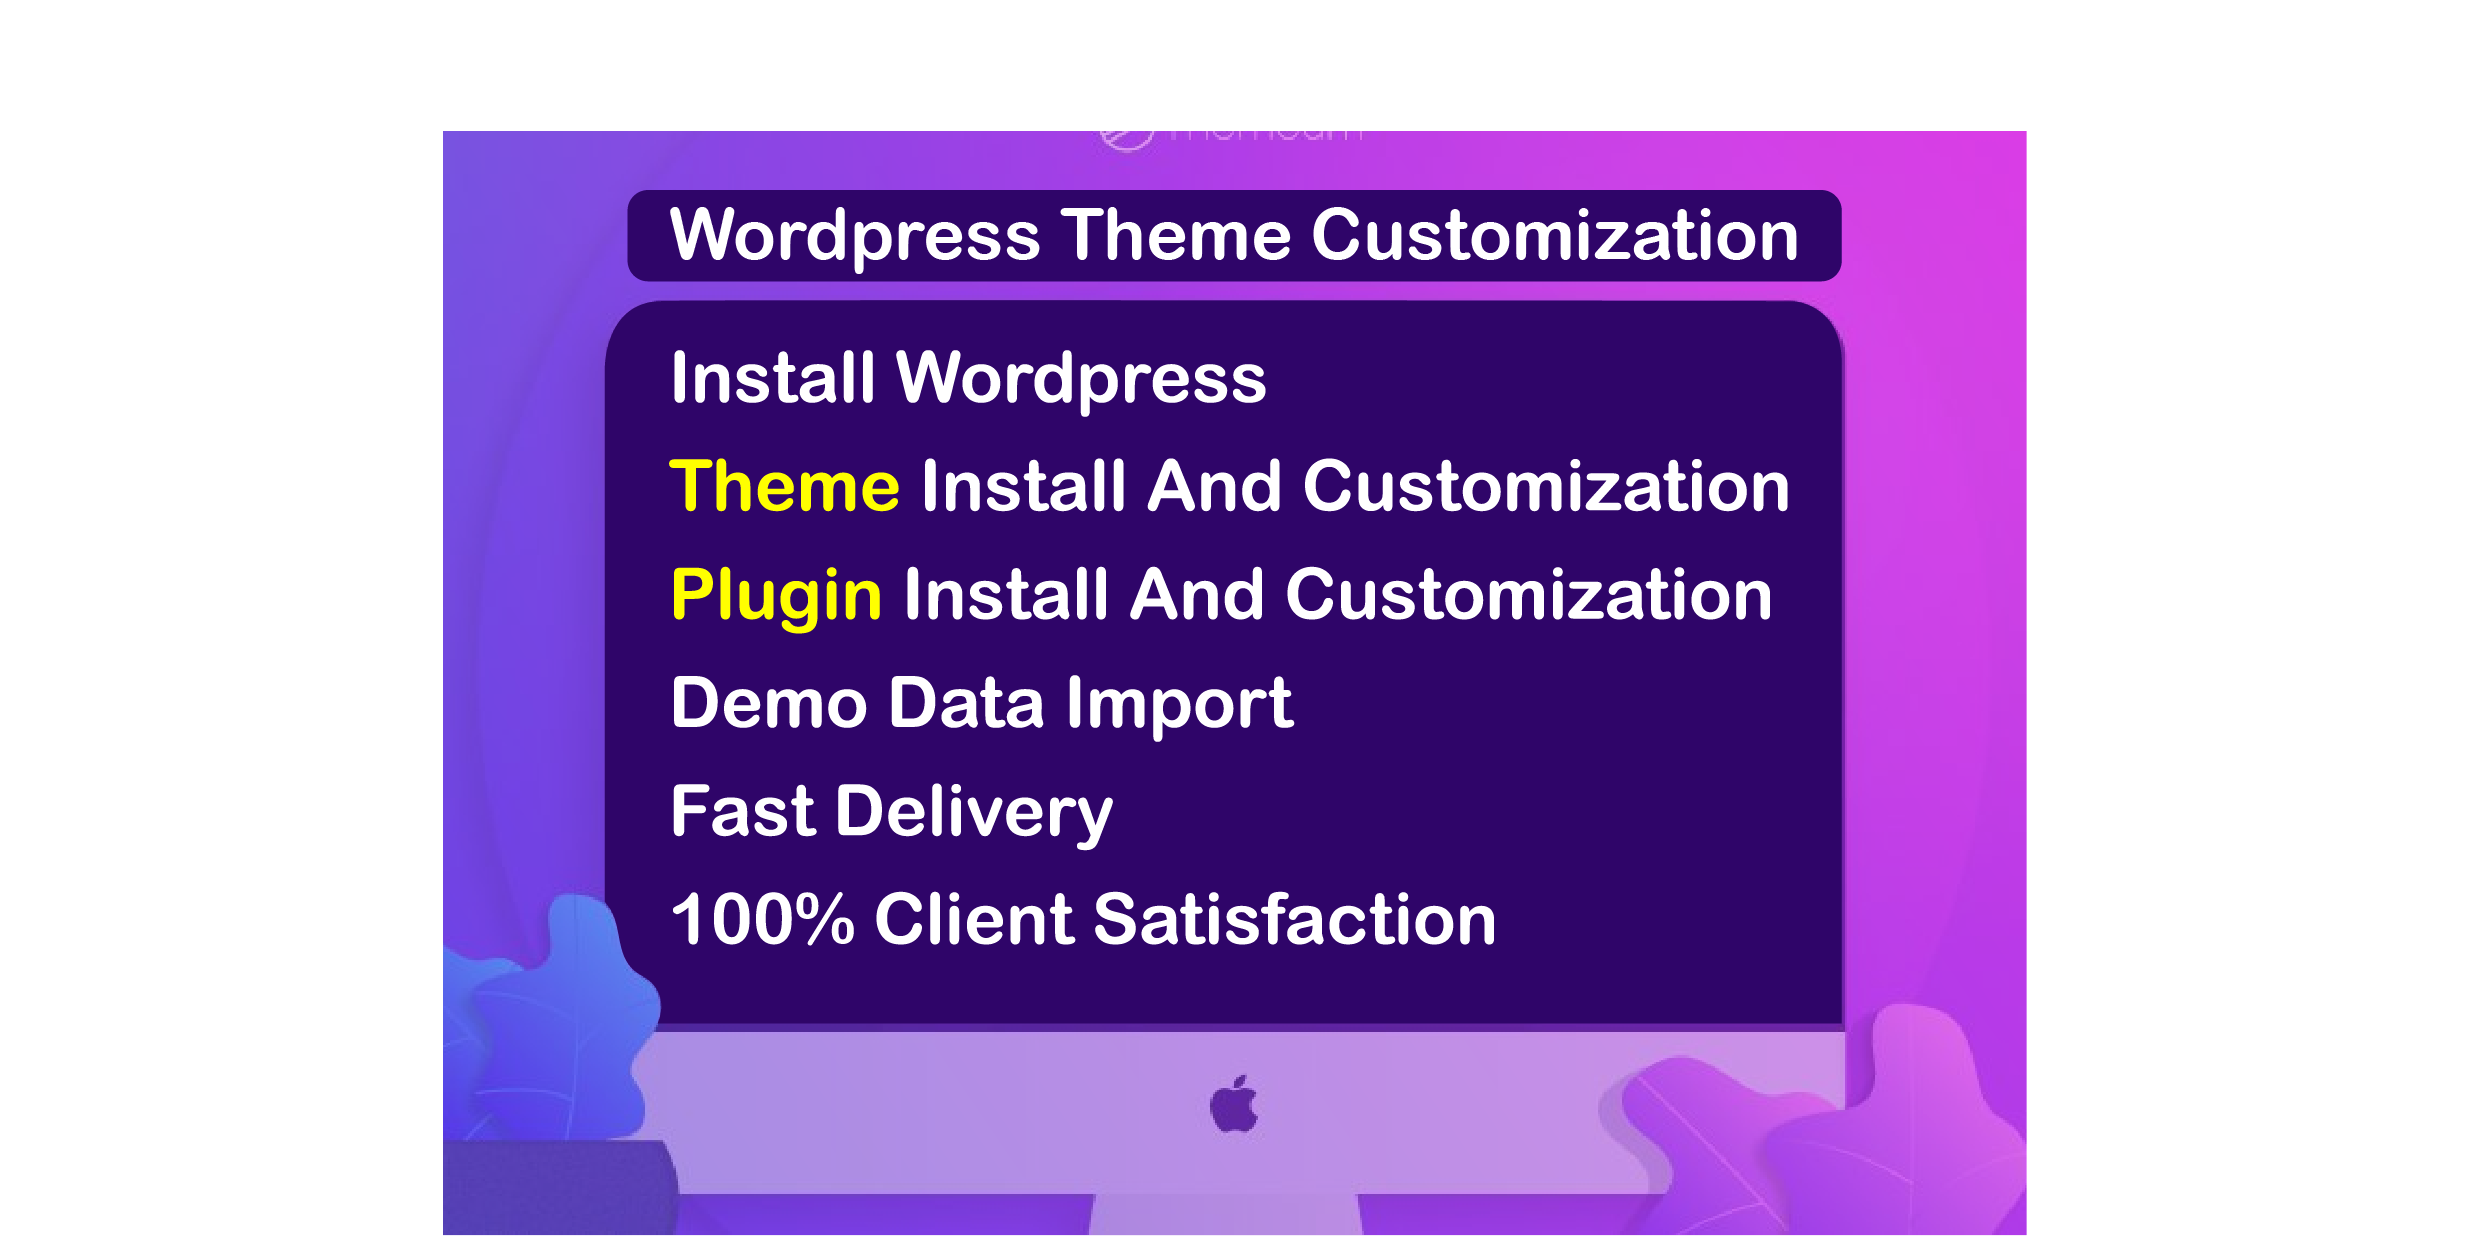 i will design wordpress website with premium theme and plugin customization